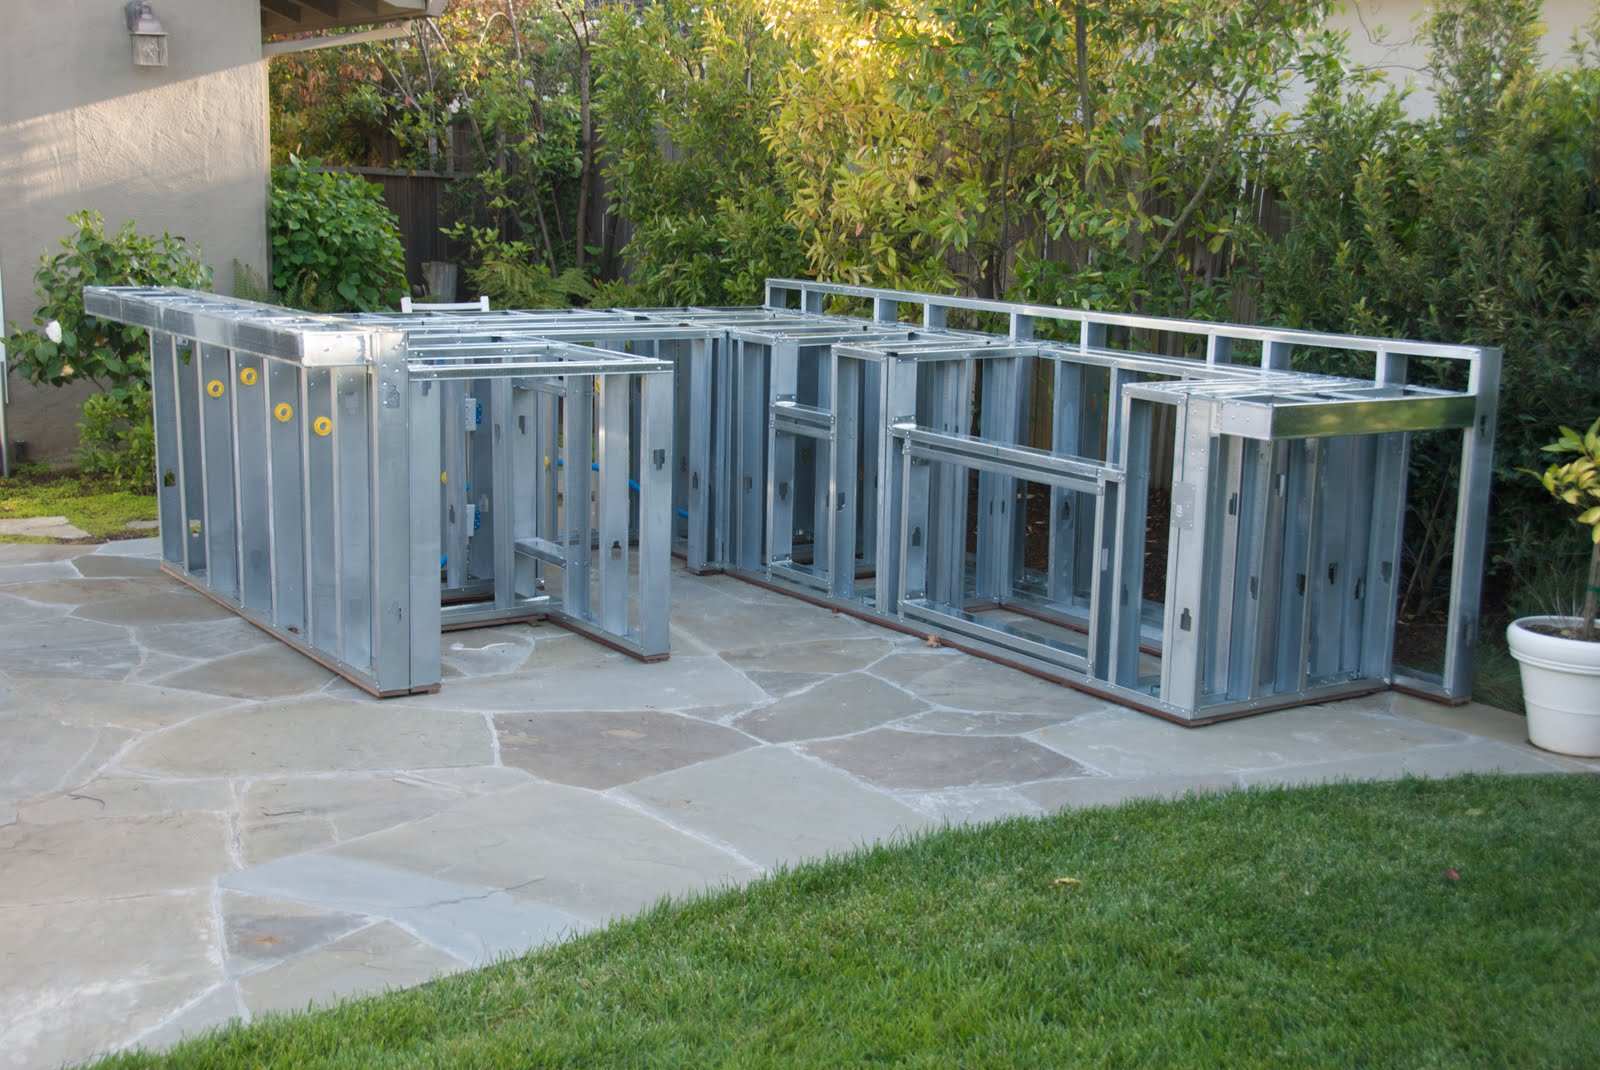 Outdoor Kitchen Frame Appliances Sale Construction The Next Phase